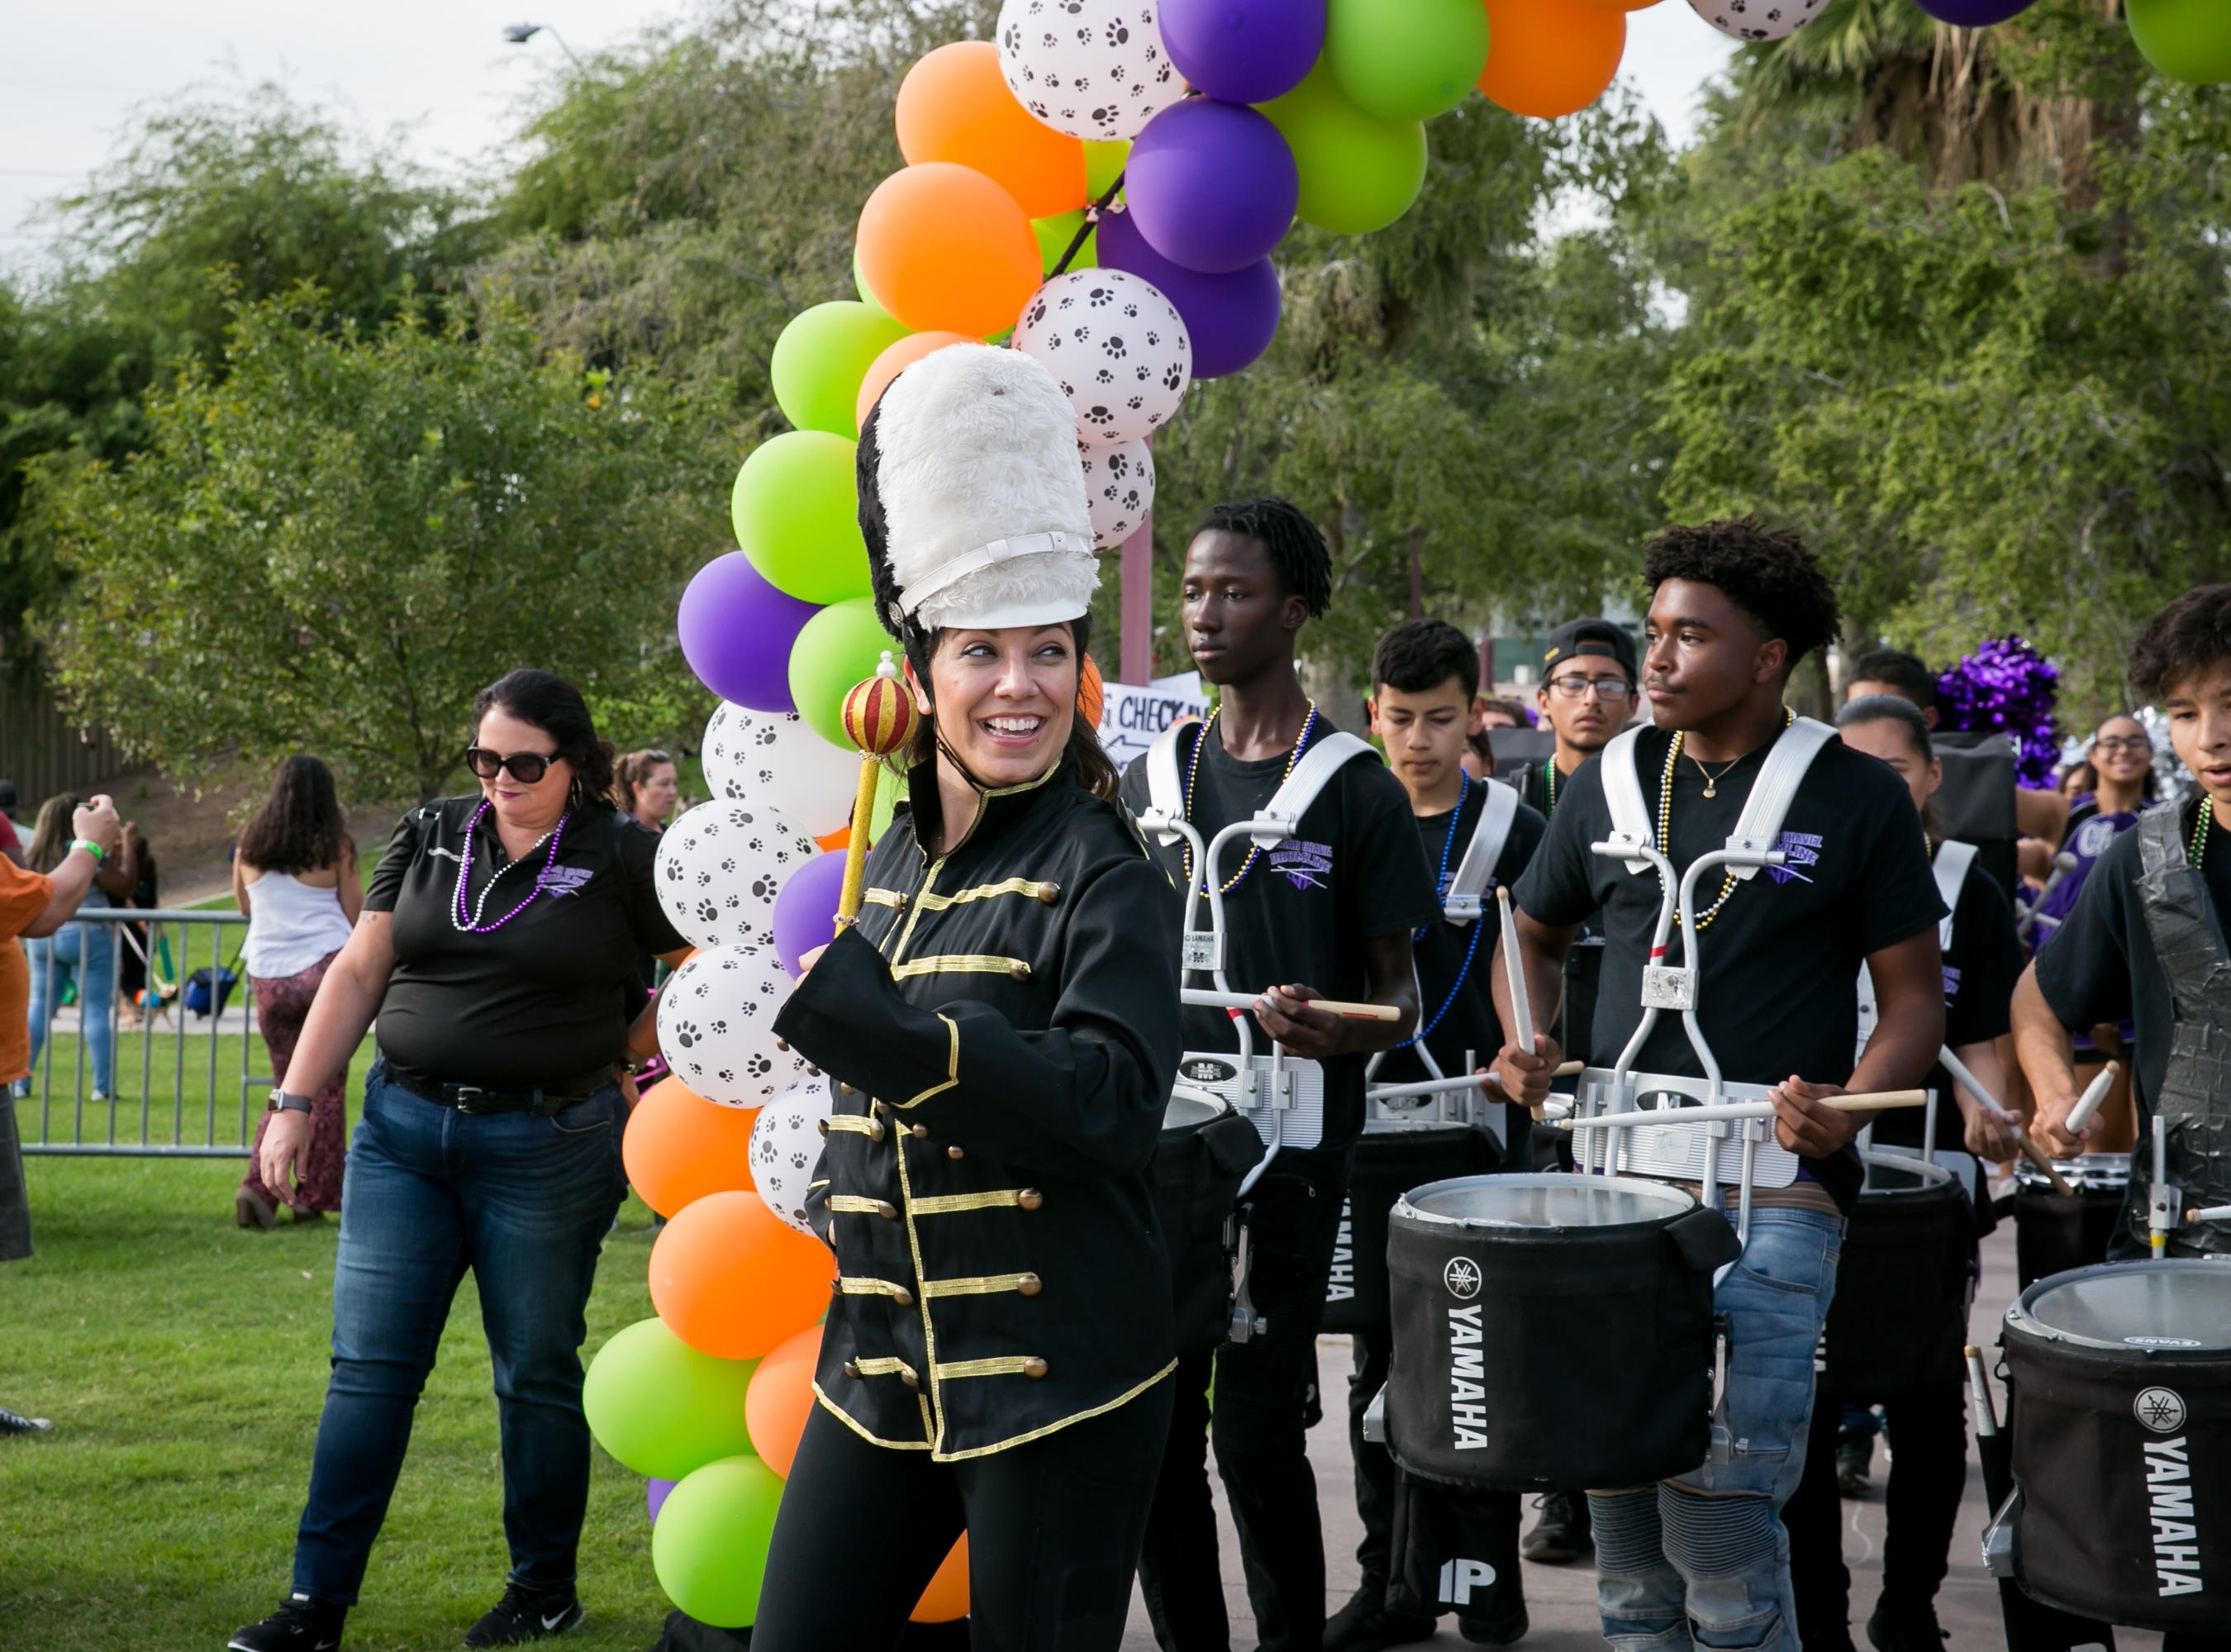 Jessica Hill lead the parade during Howl-o-Ween at Hance Park on Sunday, October 28, 2018.